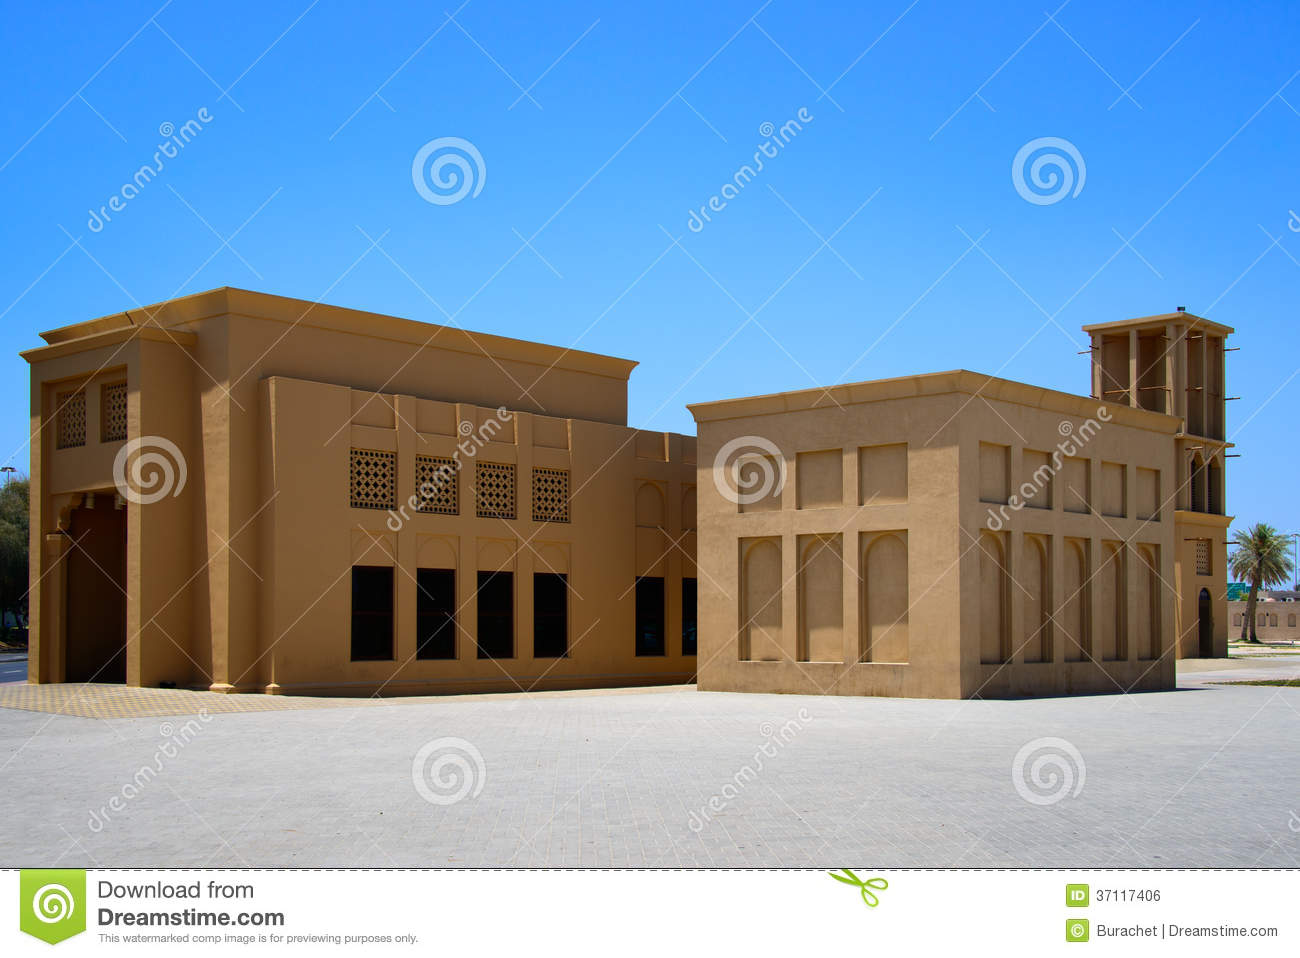 Chambre arabe image libre de droits image 37117406 for Architecture maison arabe